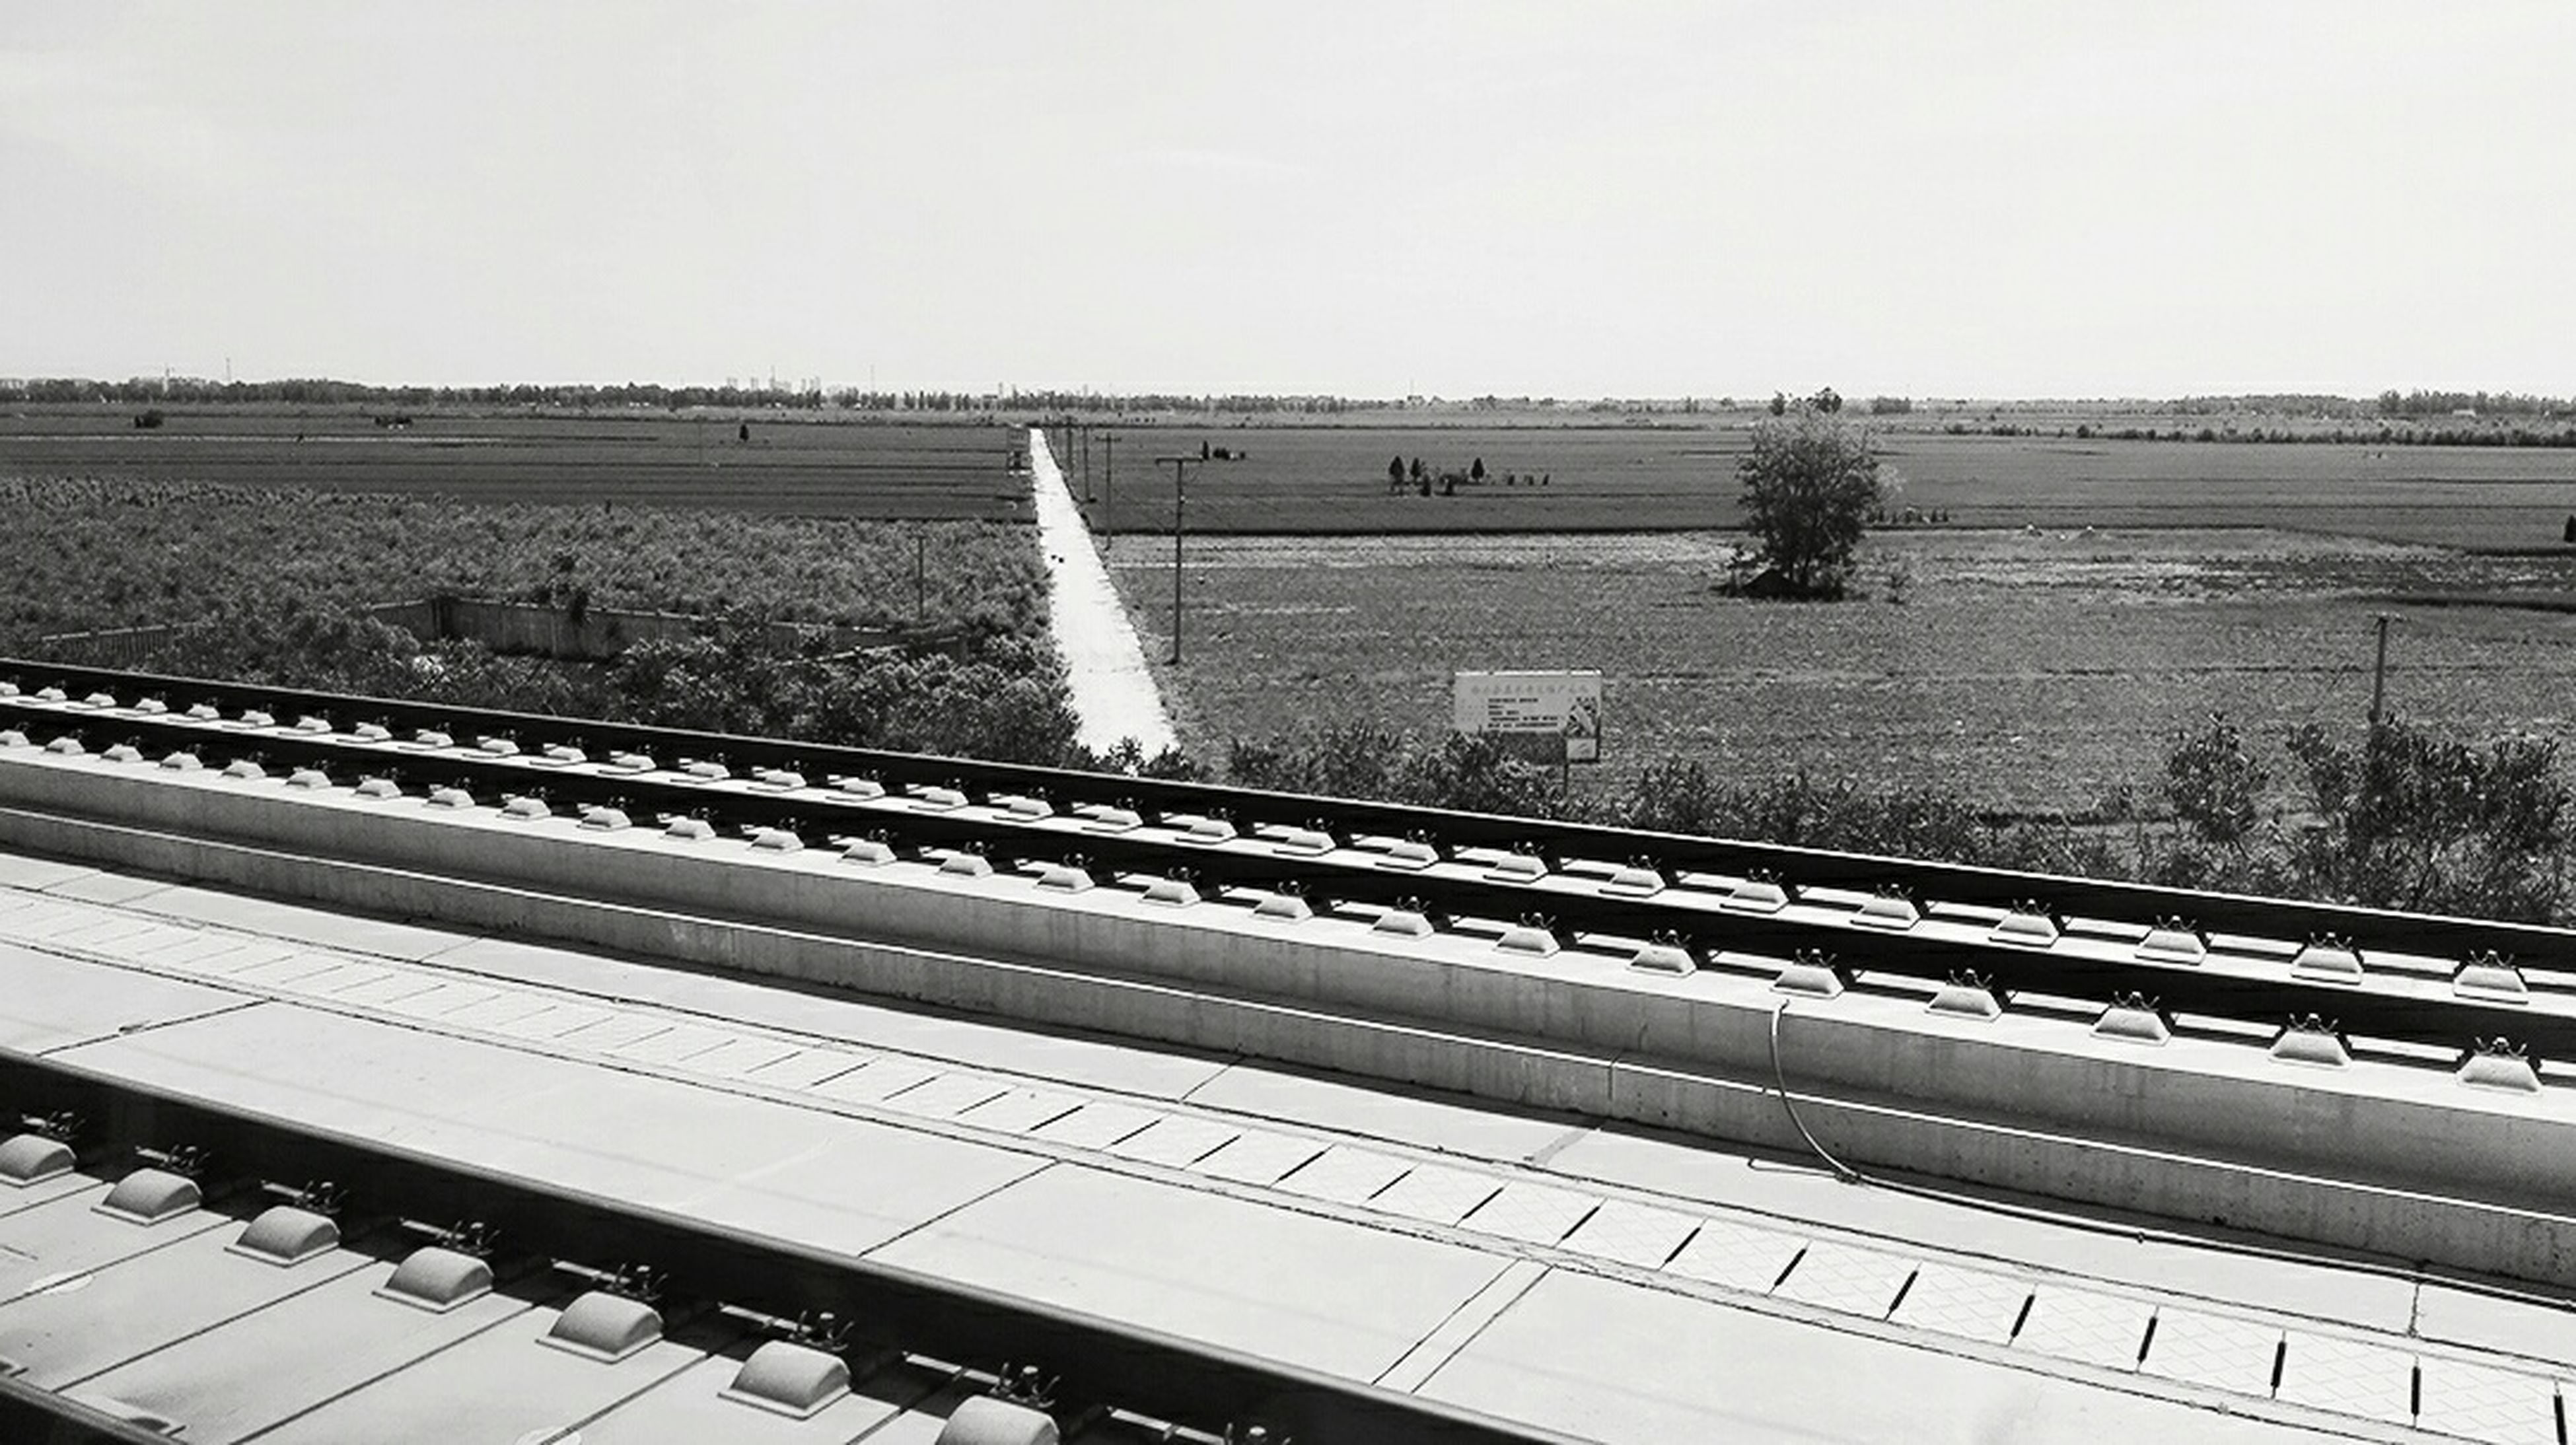 clear sky, field, copy space, agriculture, rural scene, built structure, landscape, growth, railroad track, day, tree, fence, sky, no people, high angle view, farm, architecture, outdoors, nature, building exterior